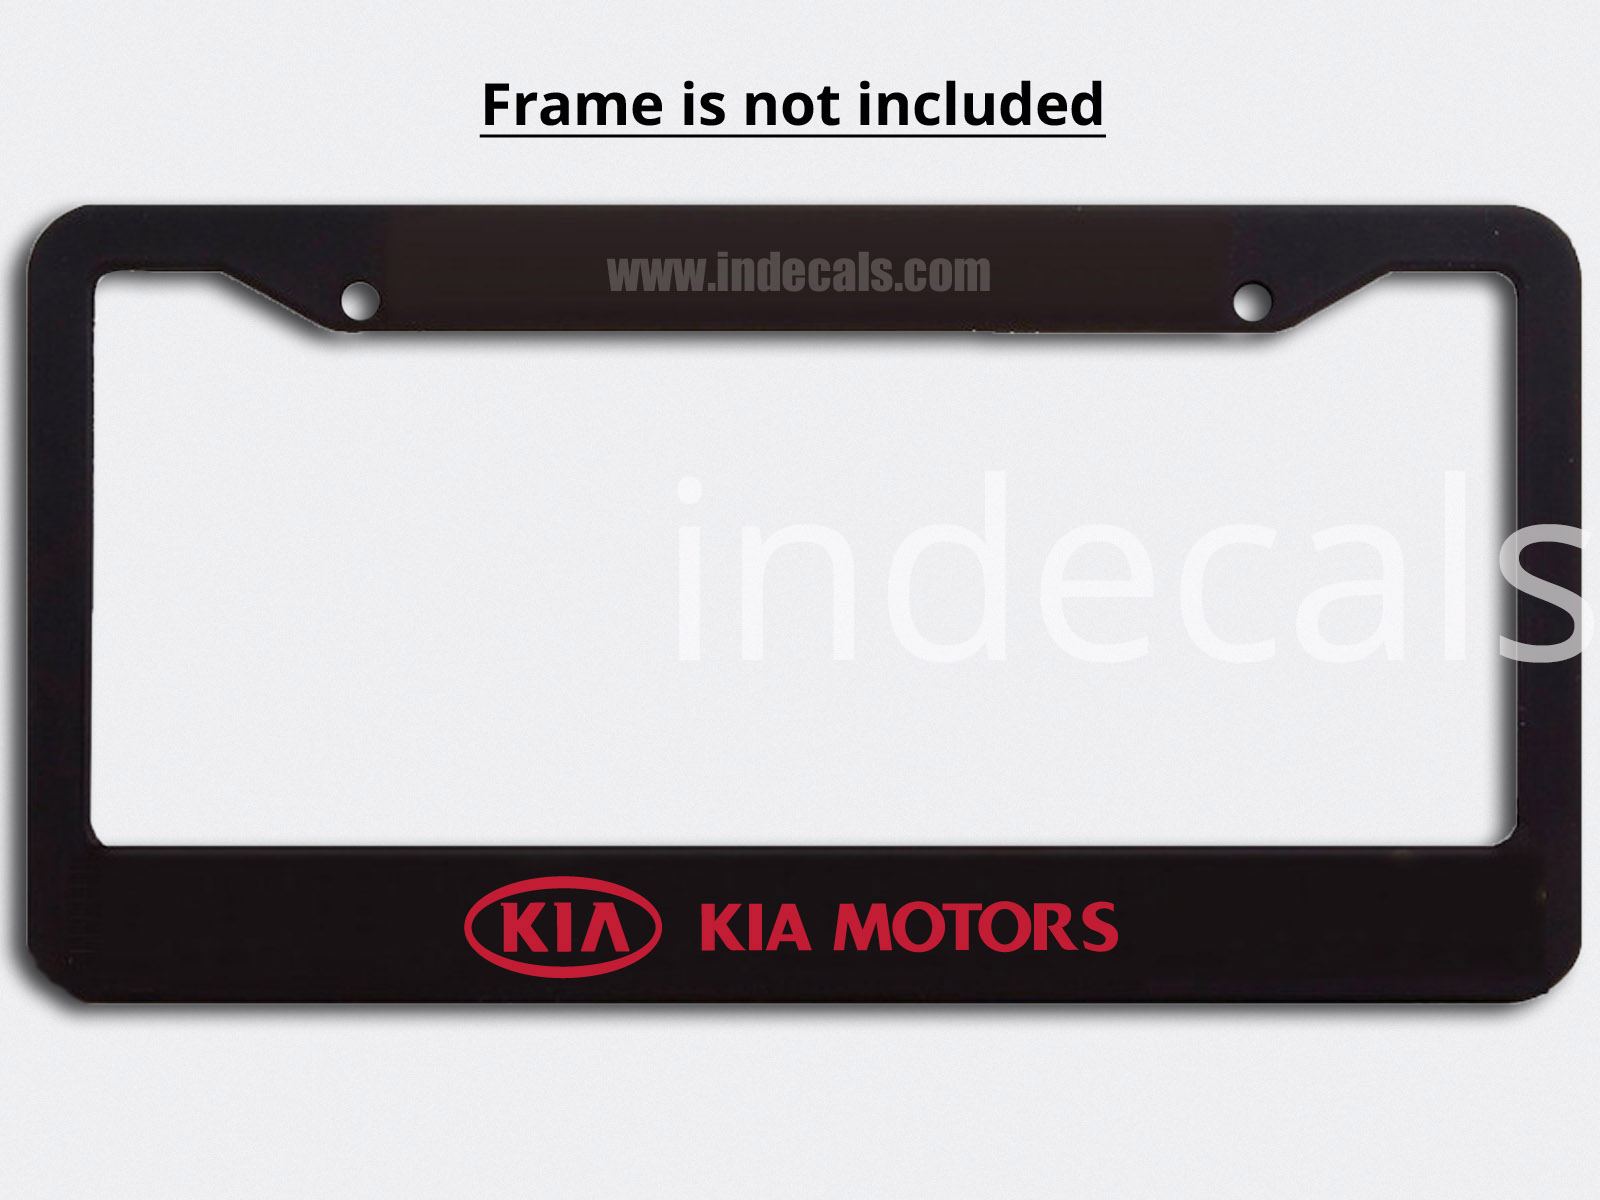 3 x Kia Stickers for Plate Frame - Red